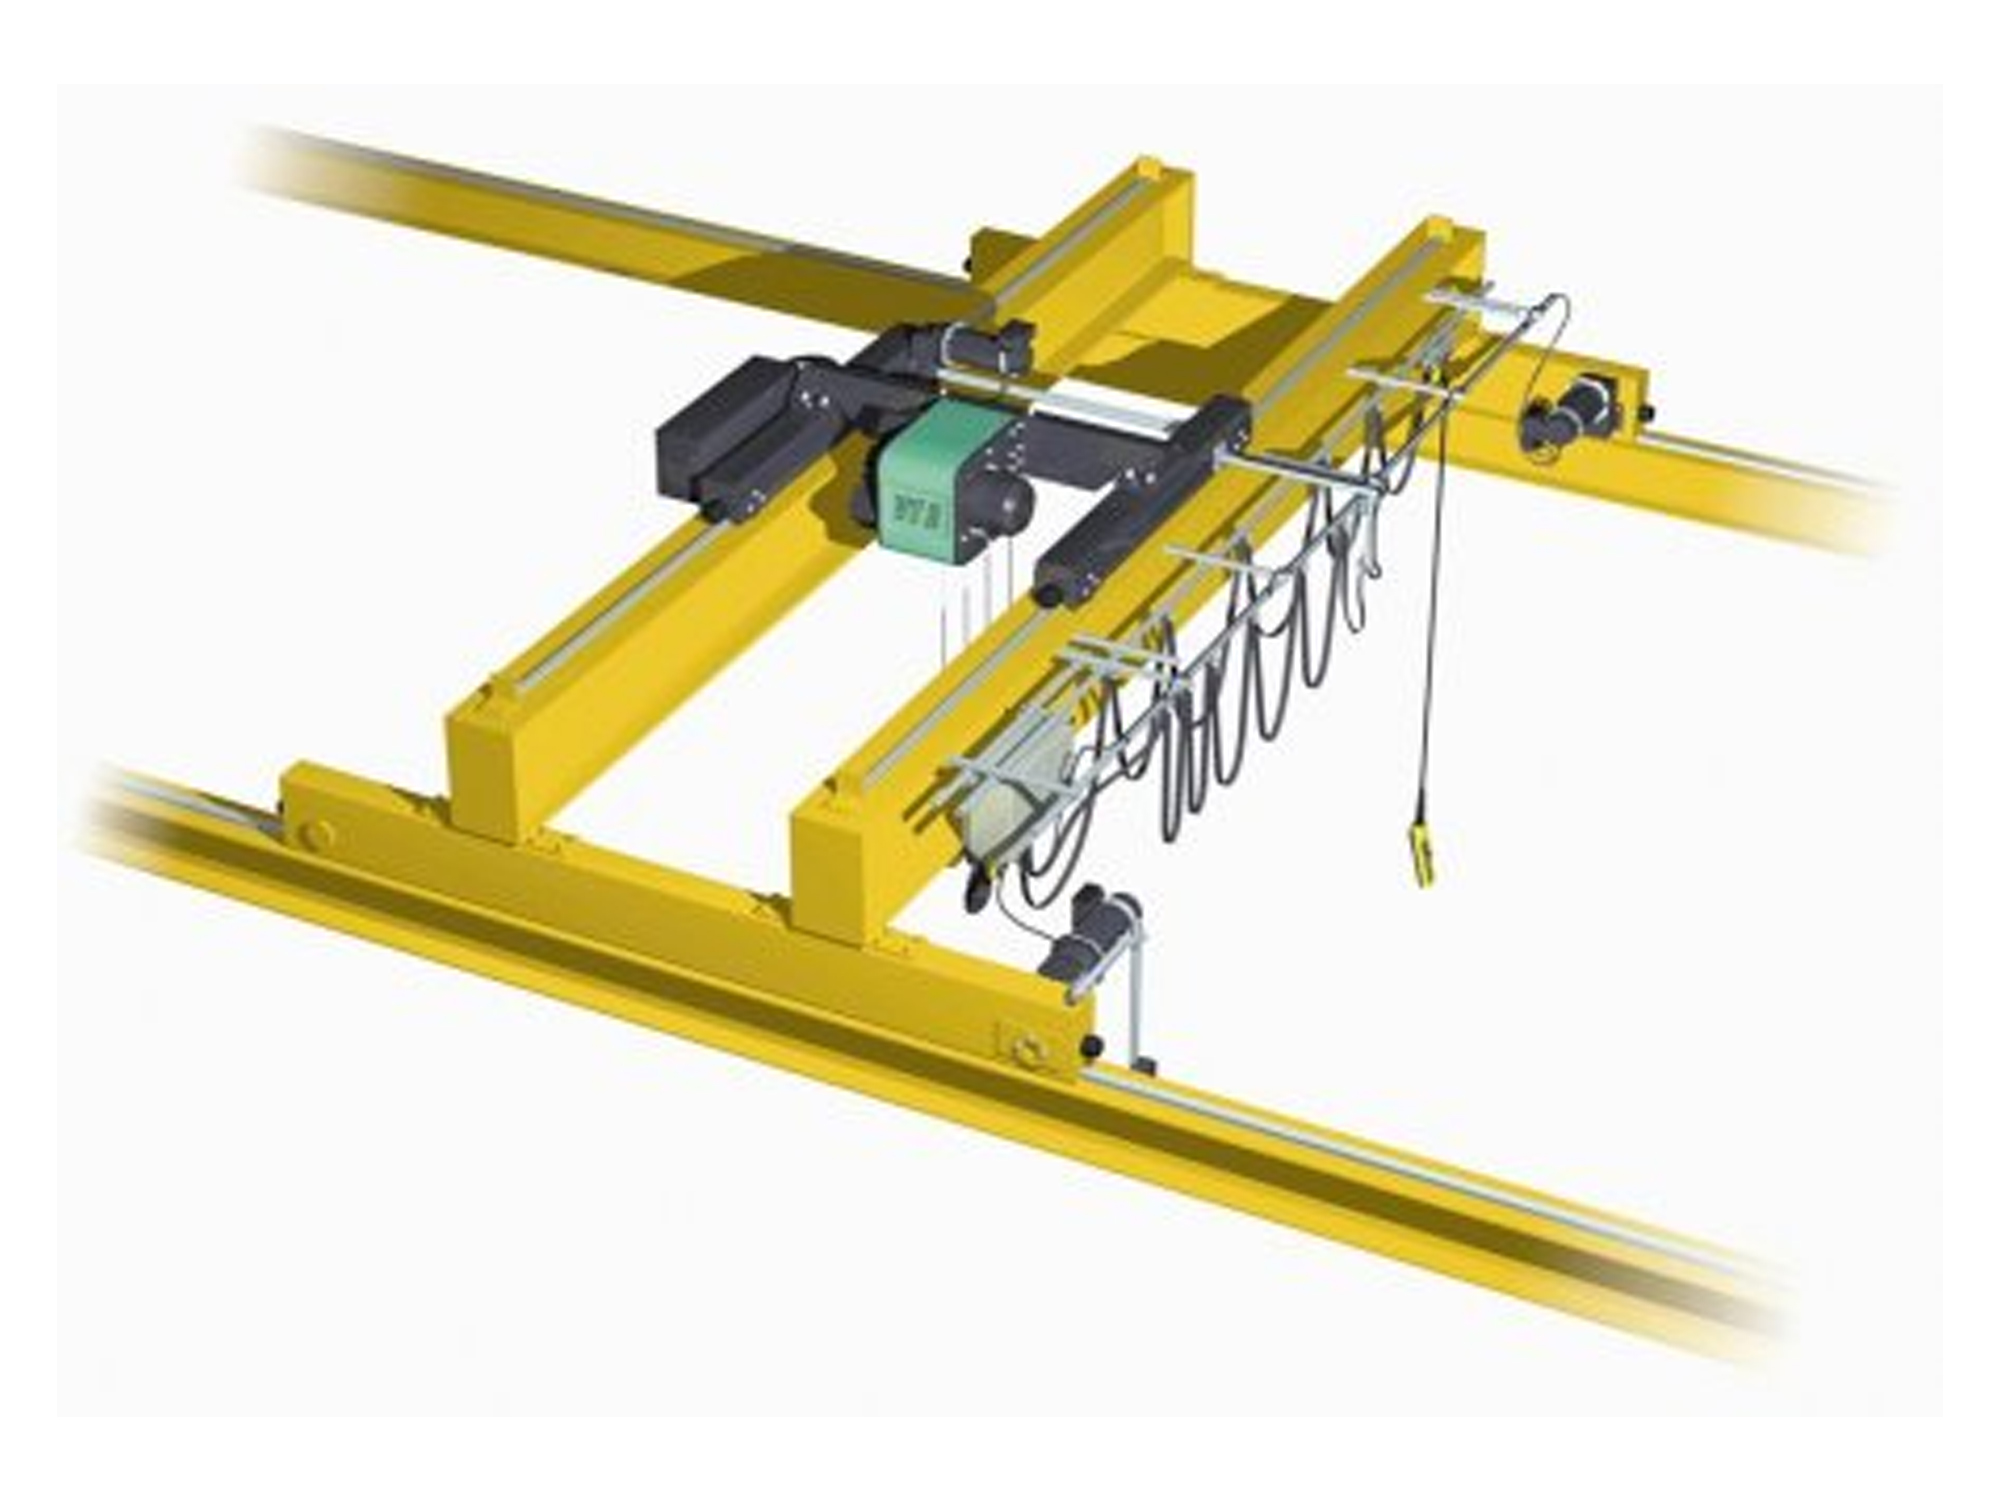 hight resolution of double girder overhead crane top running with wire rope hoist